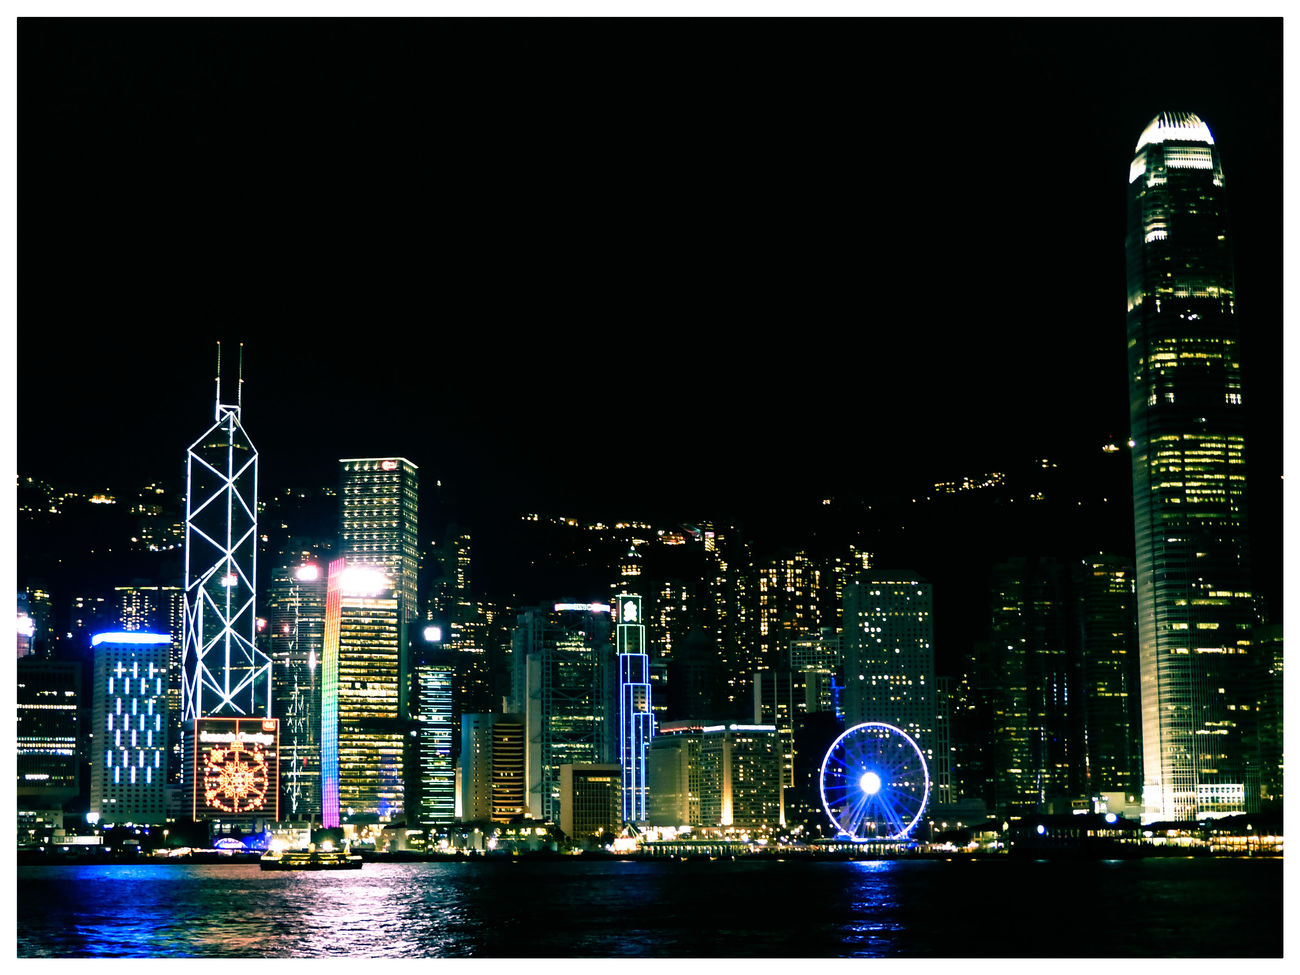 Hong Kong Hong Kong Victoria Harbour Night Photography City Skyline Cityscapes